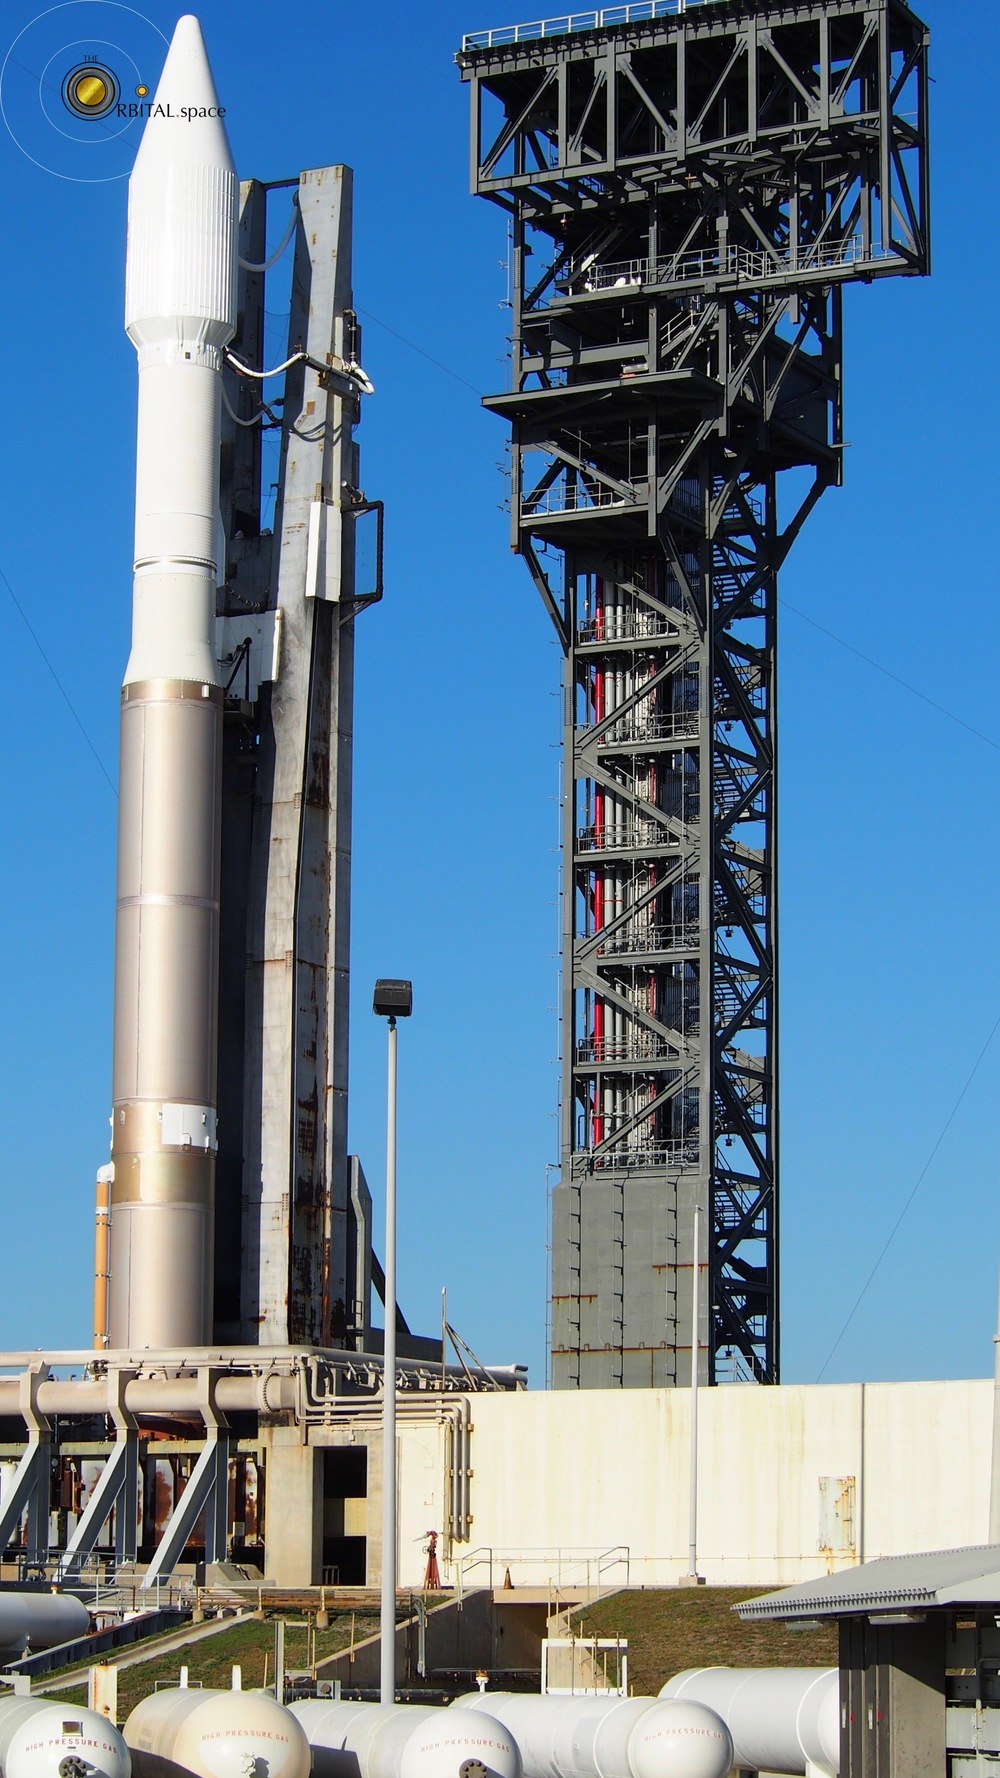 Atlas-V next to Crew Tower under construction